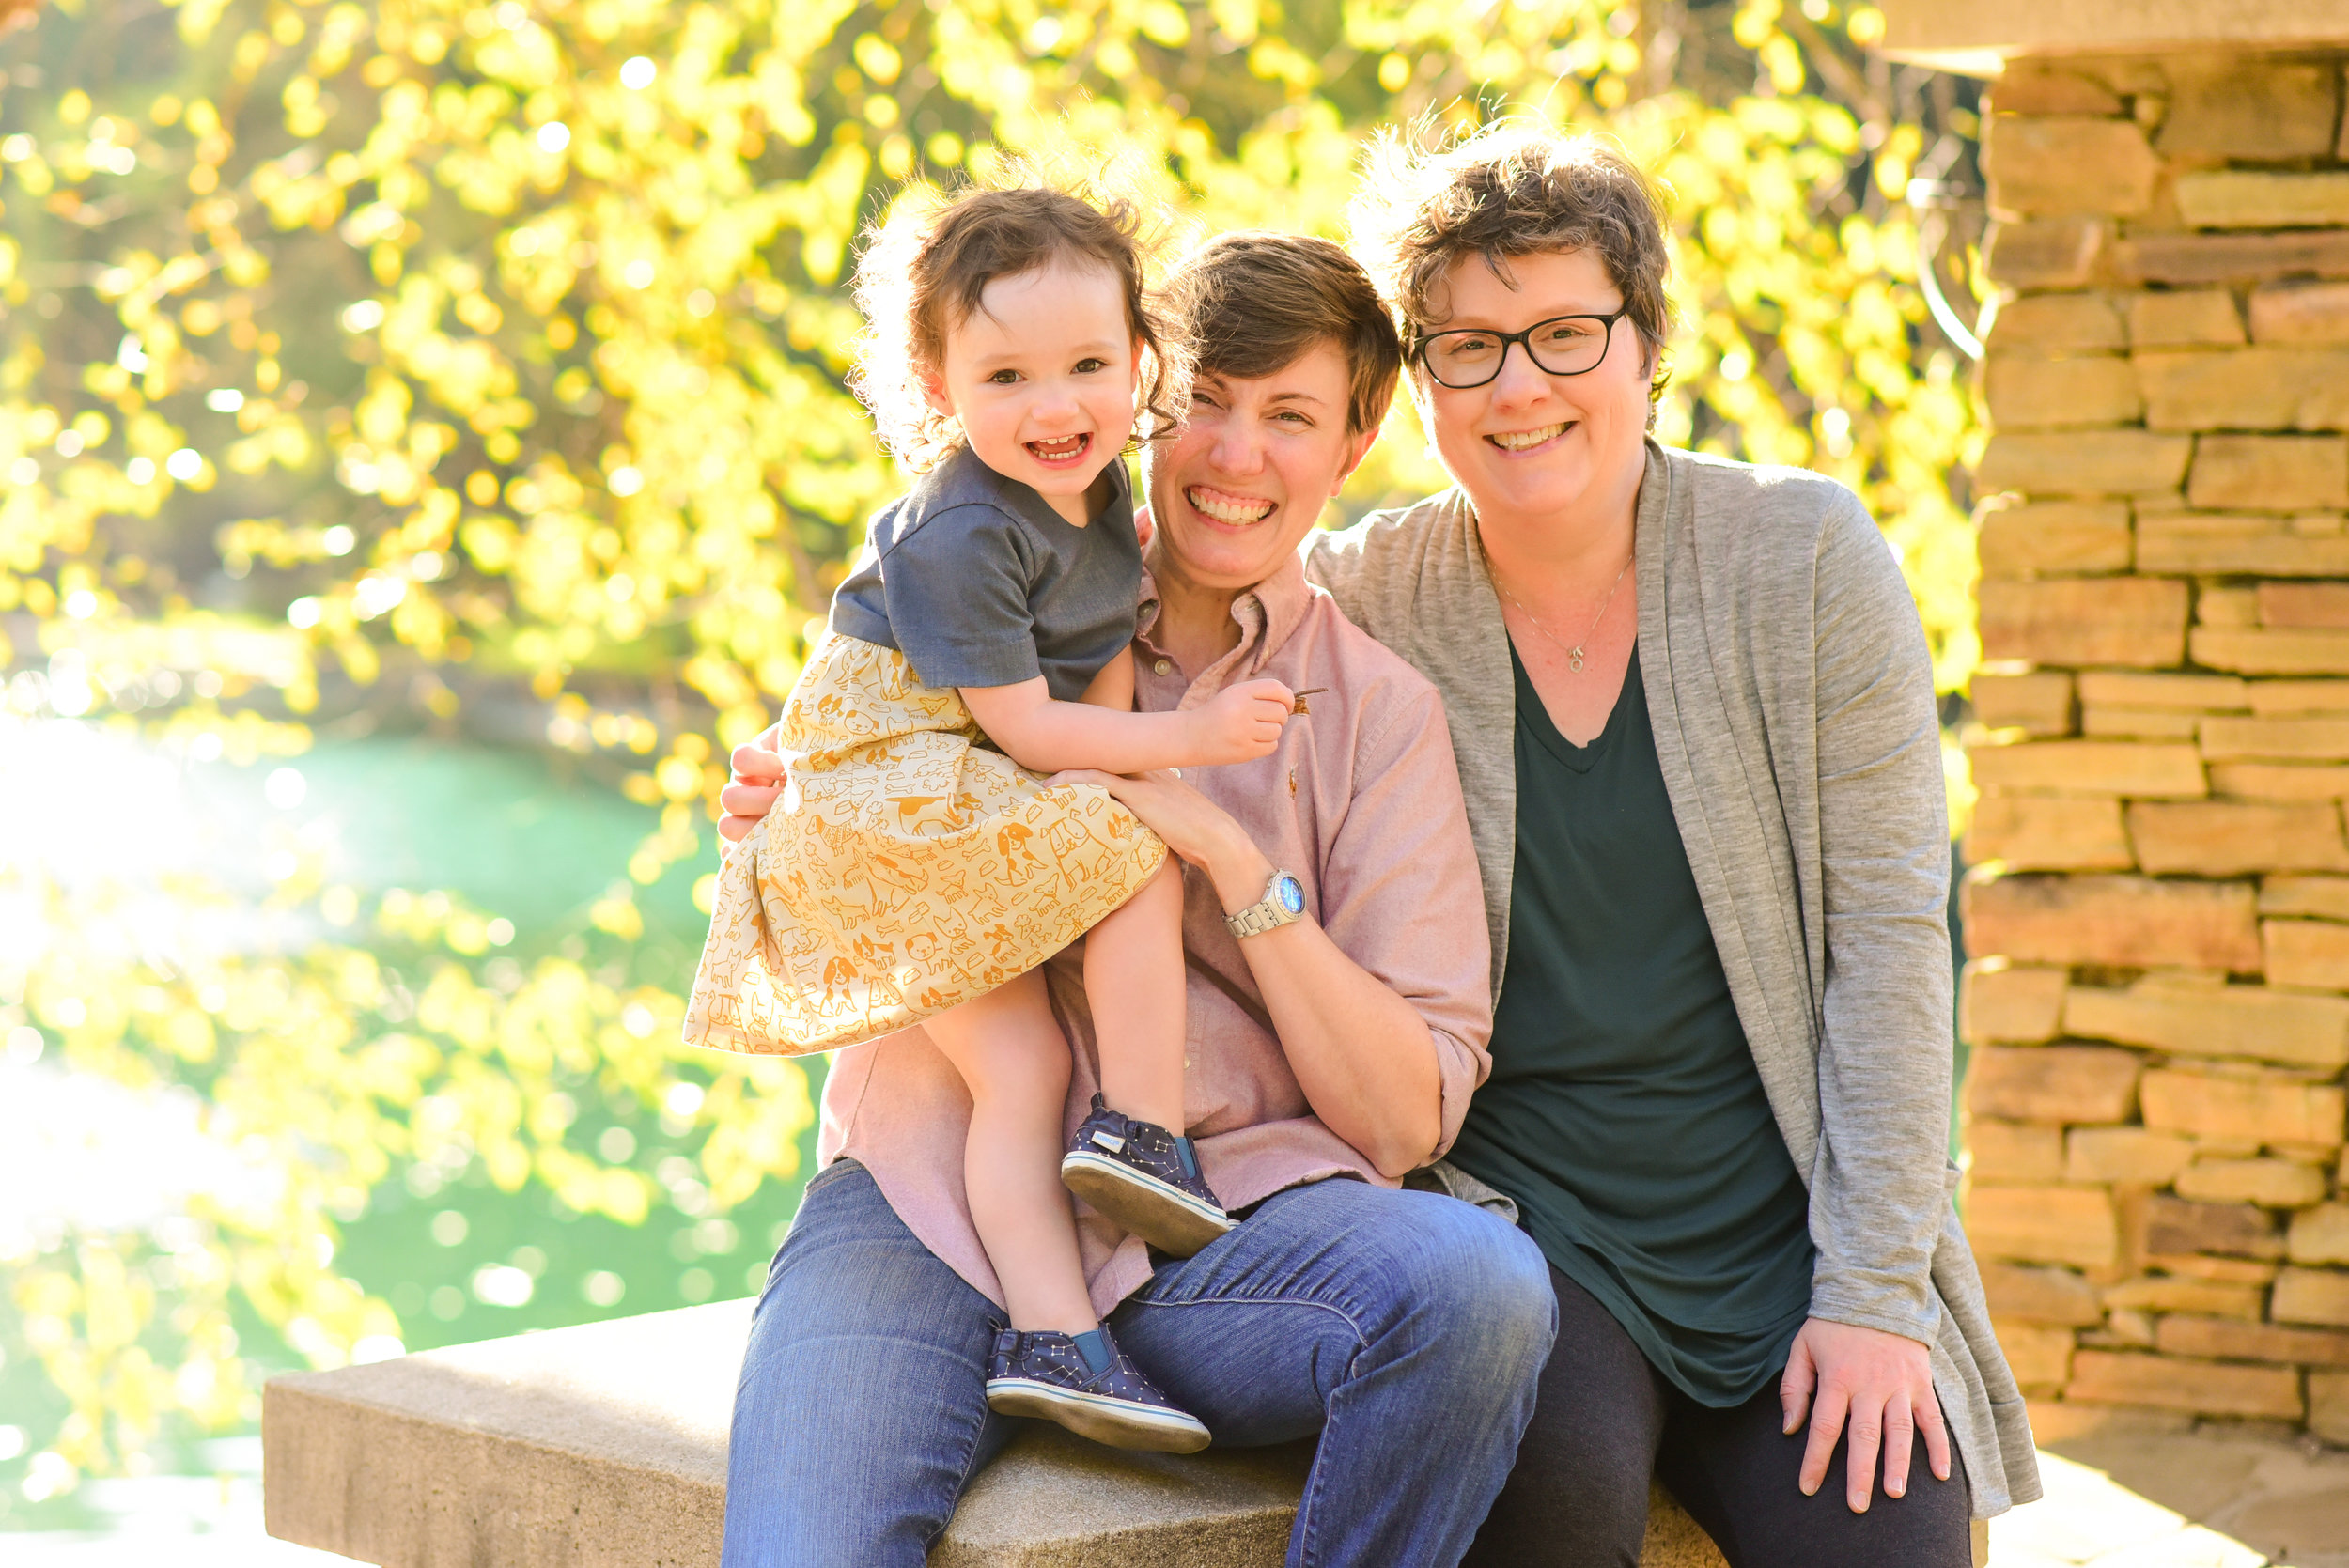 LGBTQ Family of 3